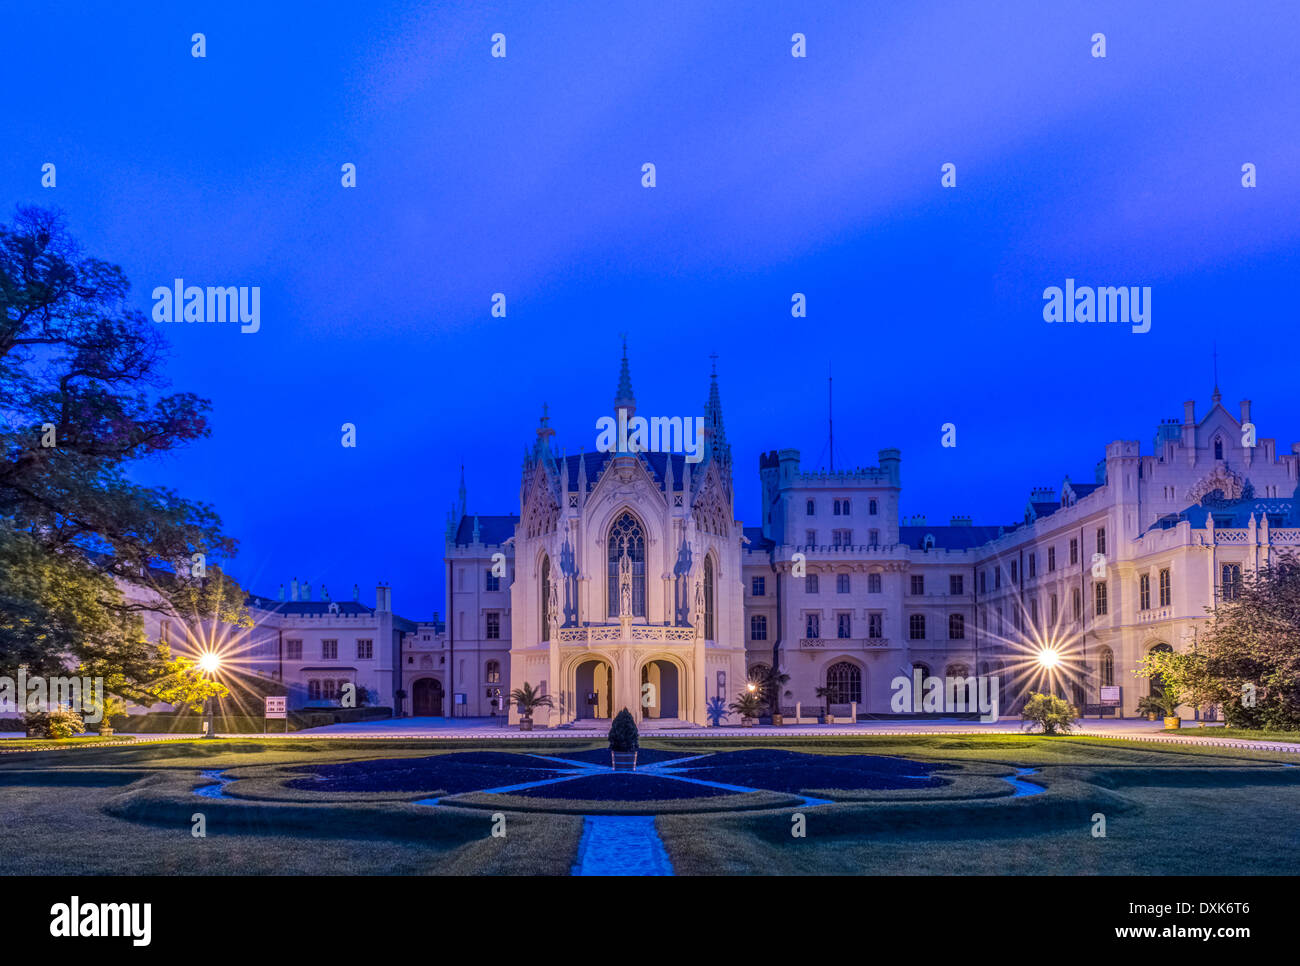 Castle illuminated at dawn, Prague, Czech Republic - Stock Image